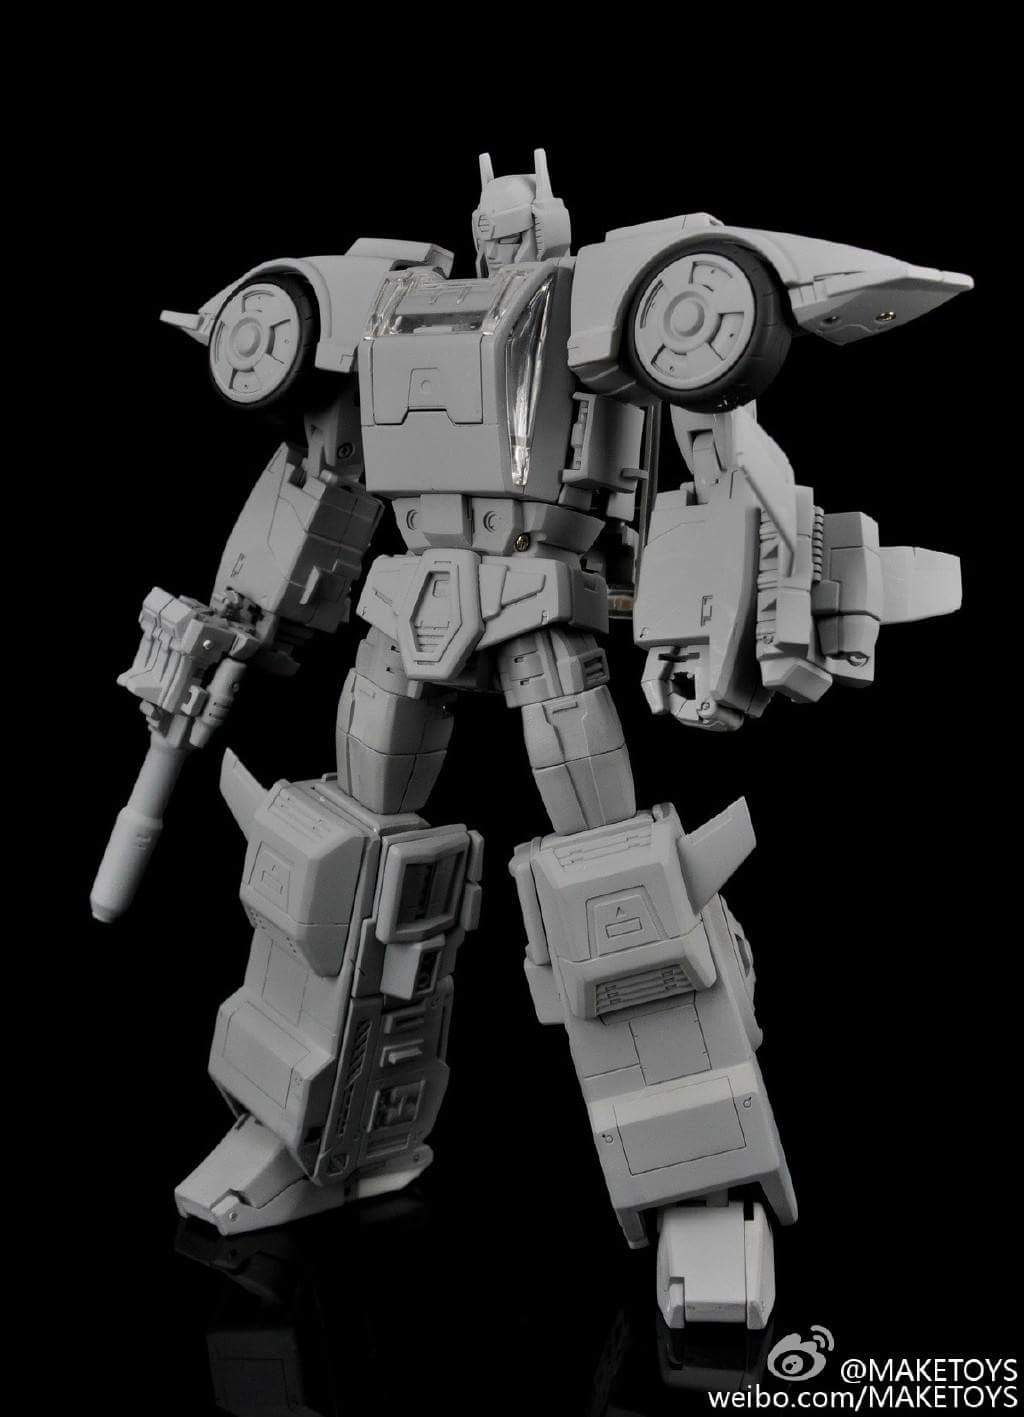 [Maketoys] Produit Tiers - Jouets MTRM - aka Headmasters et Targetmasters - Page 2 VrqZTzTR